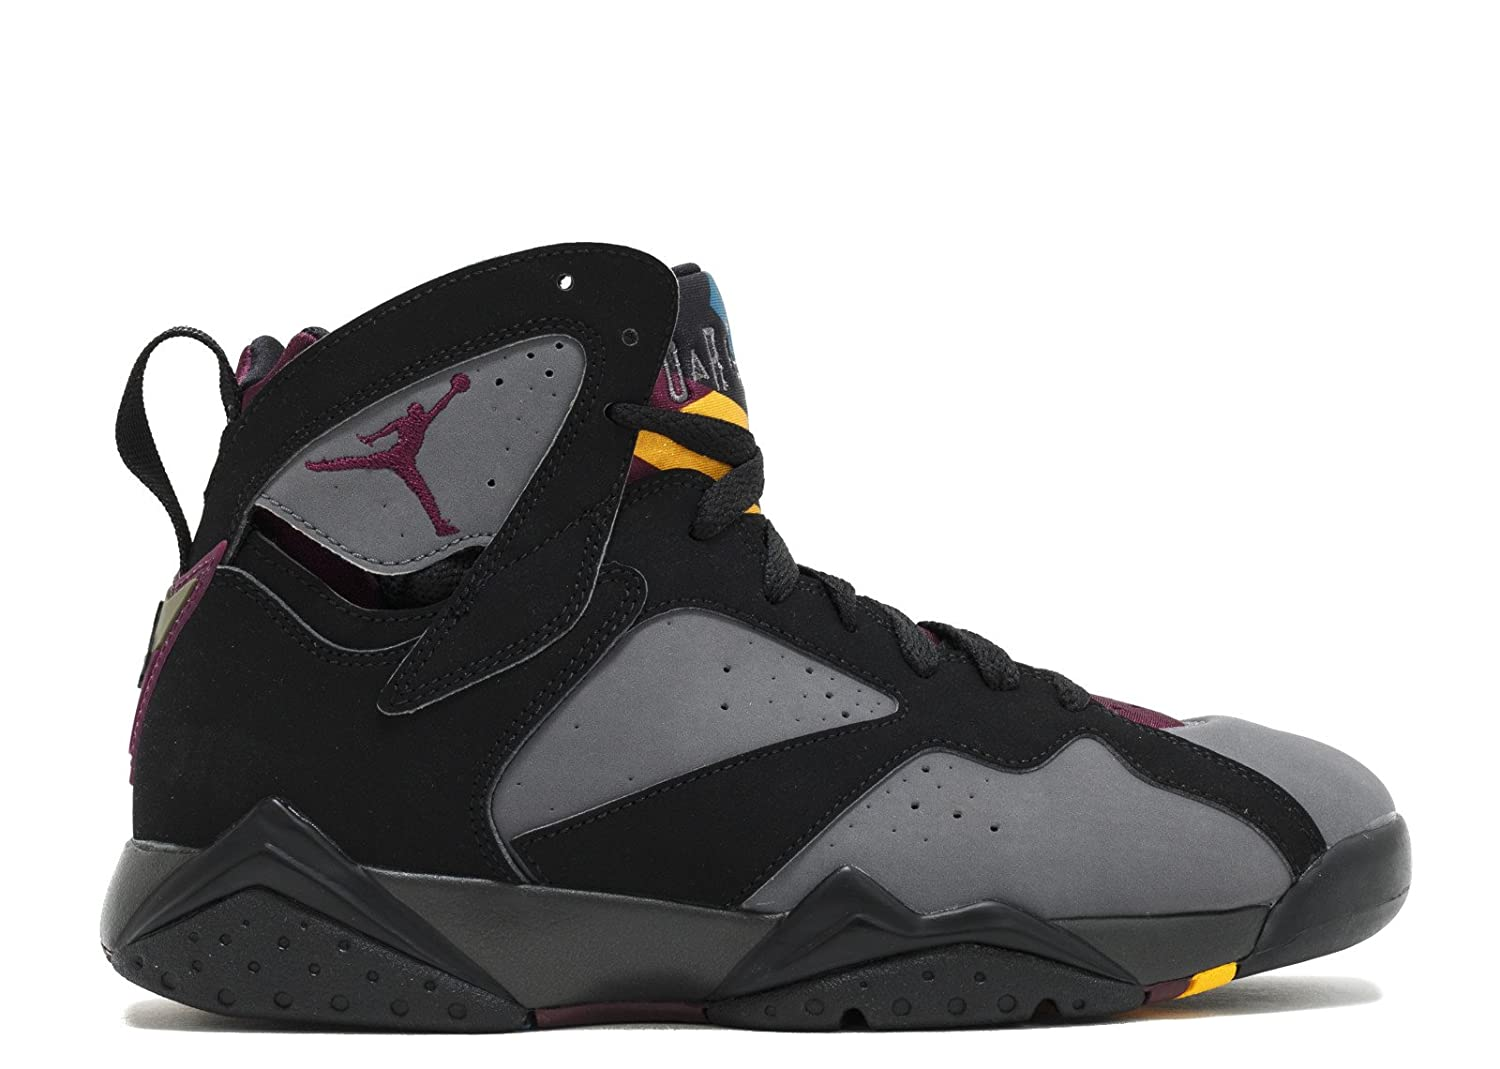 sale retailer 6aaf2 73011 Amazon.com   Air Jordan 7 Retro